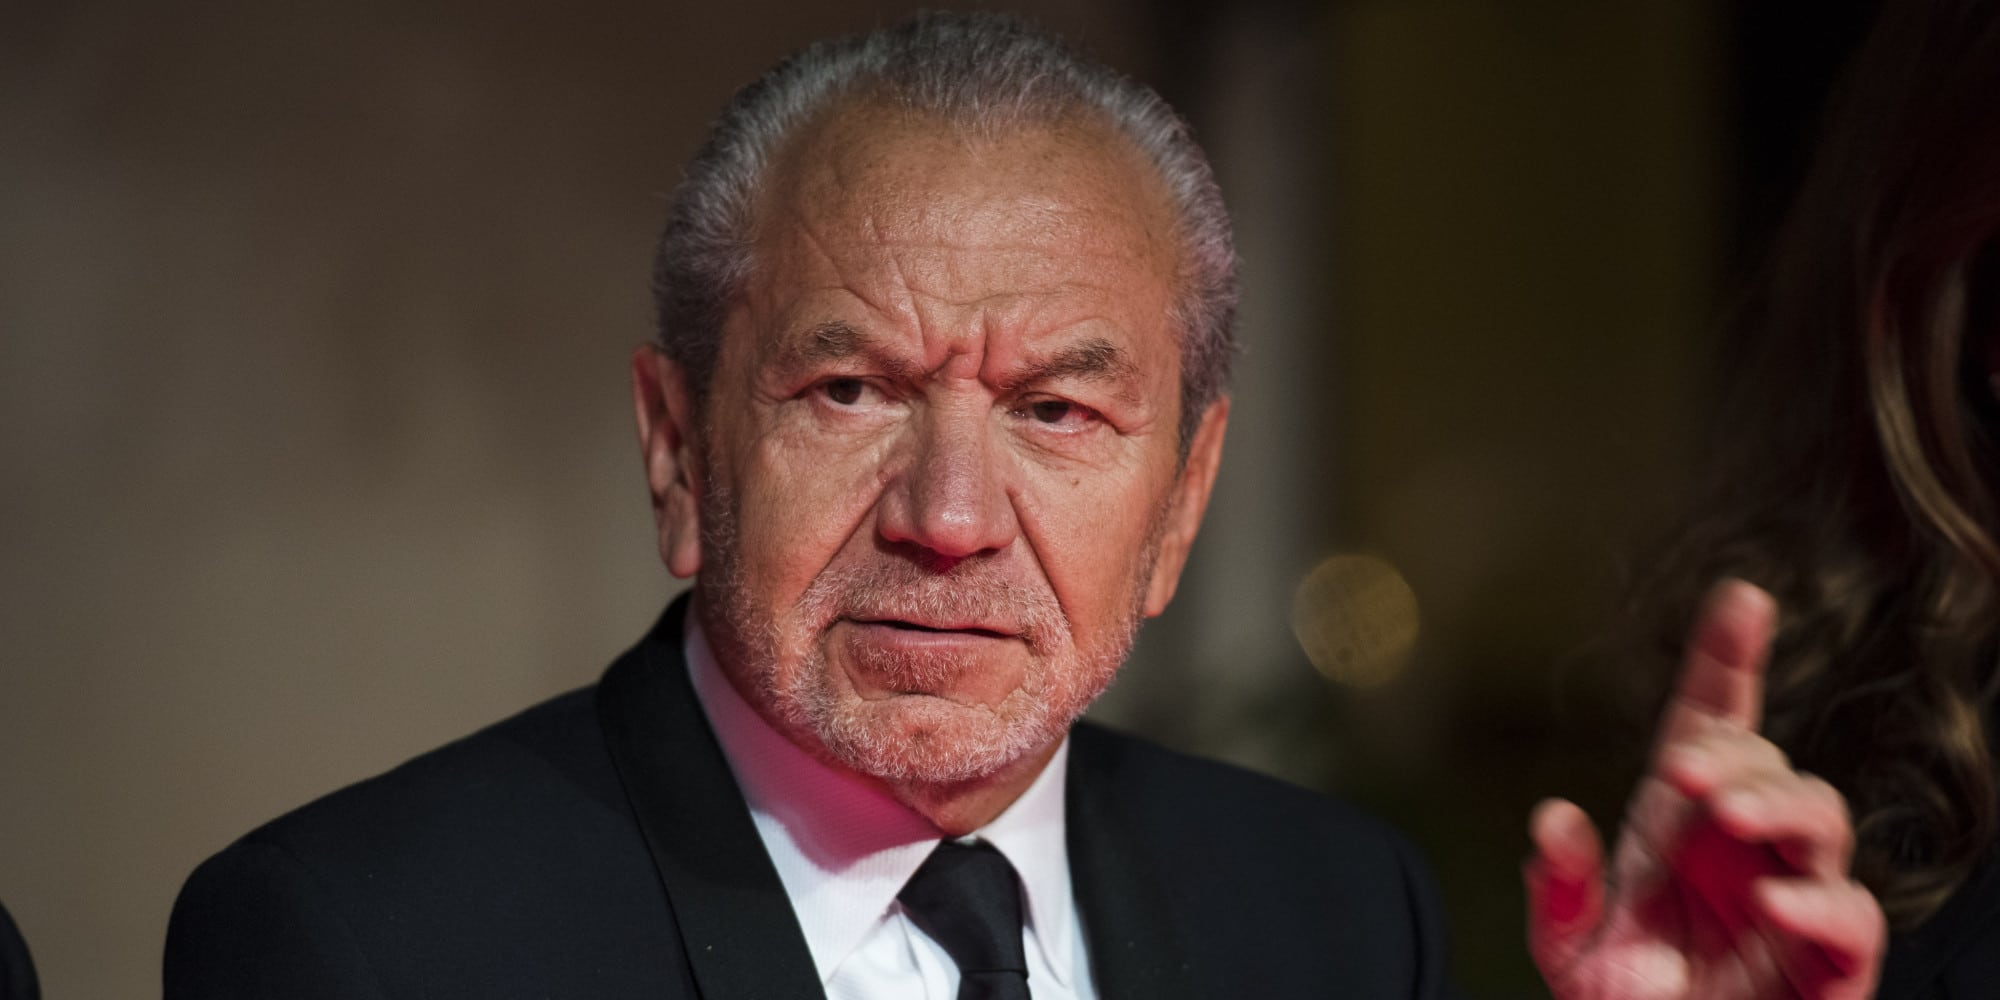 Alan Sugar Net Worth 2019 - Wiki, Age, Weight & Height